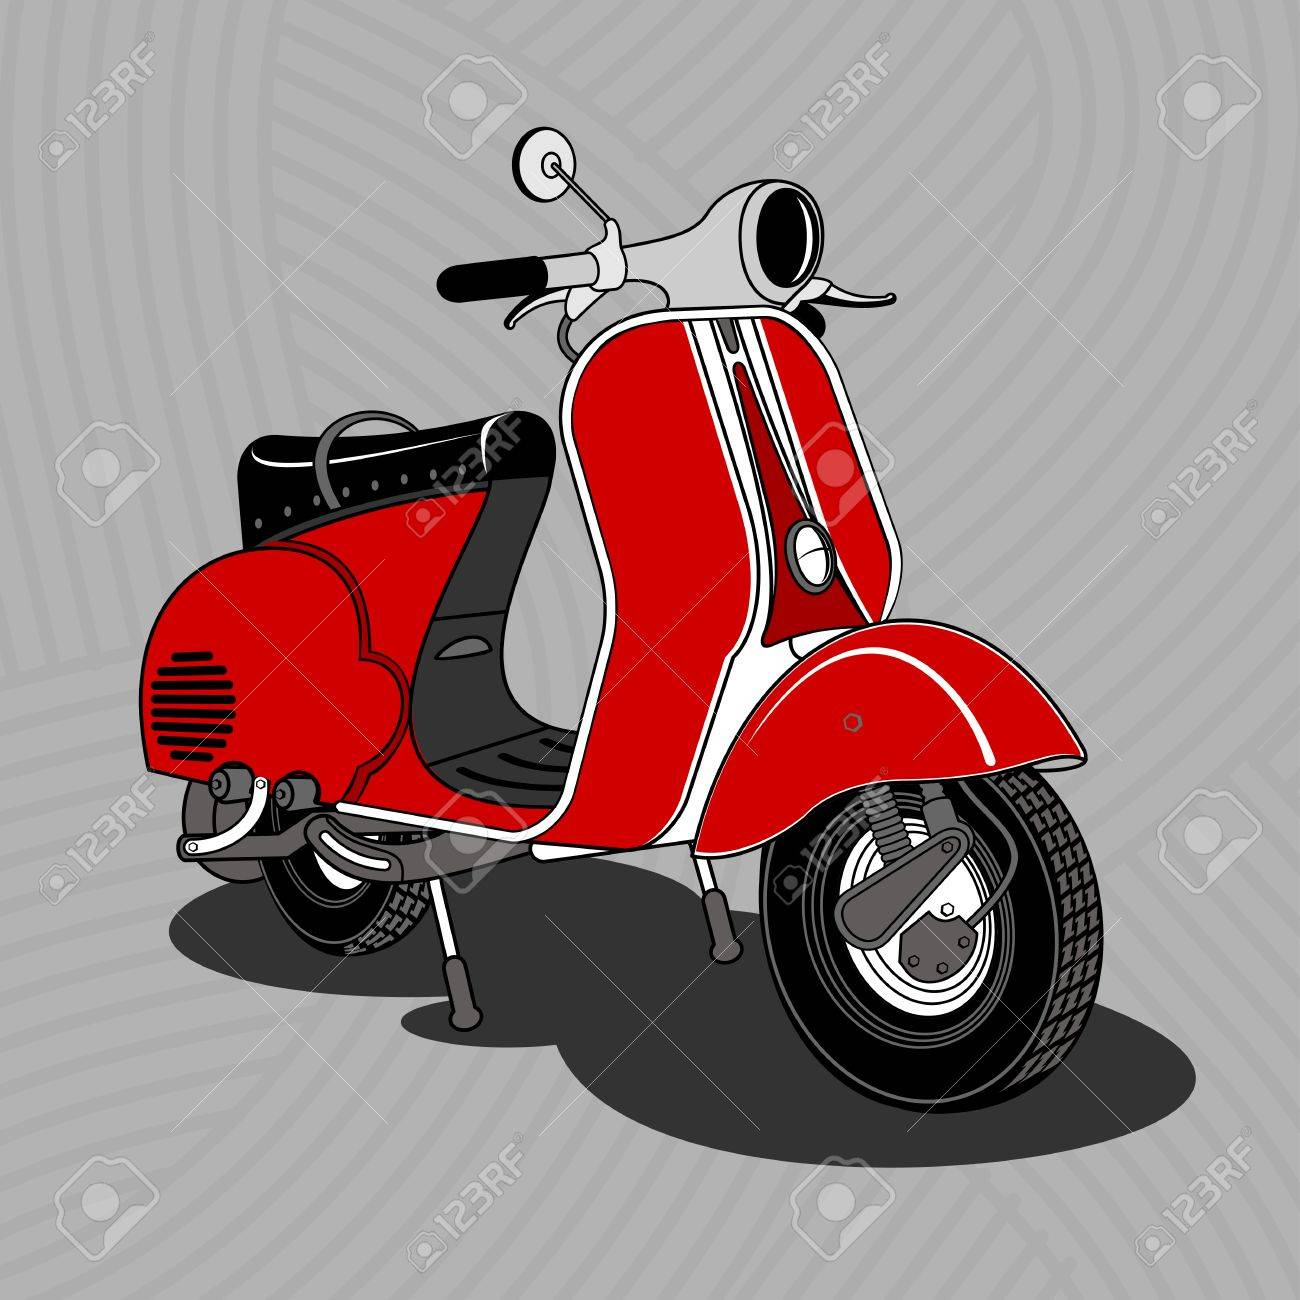 Vector Illustration Of Vintage Scooter Emblems And Label Scooter Royalty Free Cliparts Vectors And Stock Illustration Image 70446814